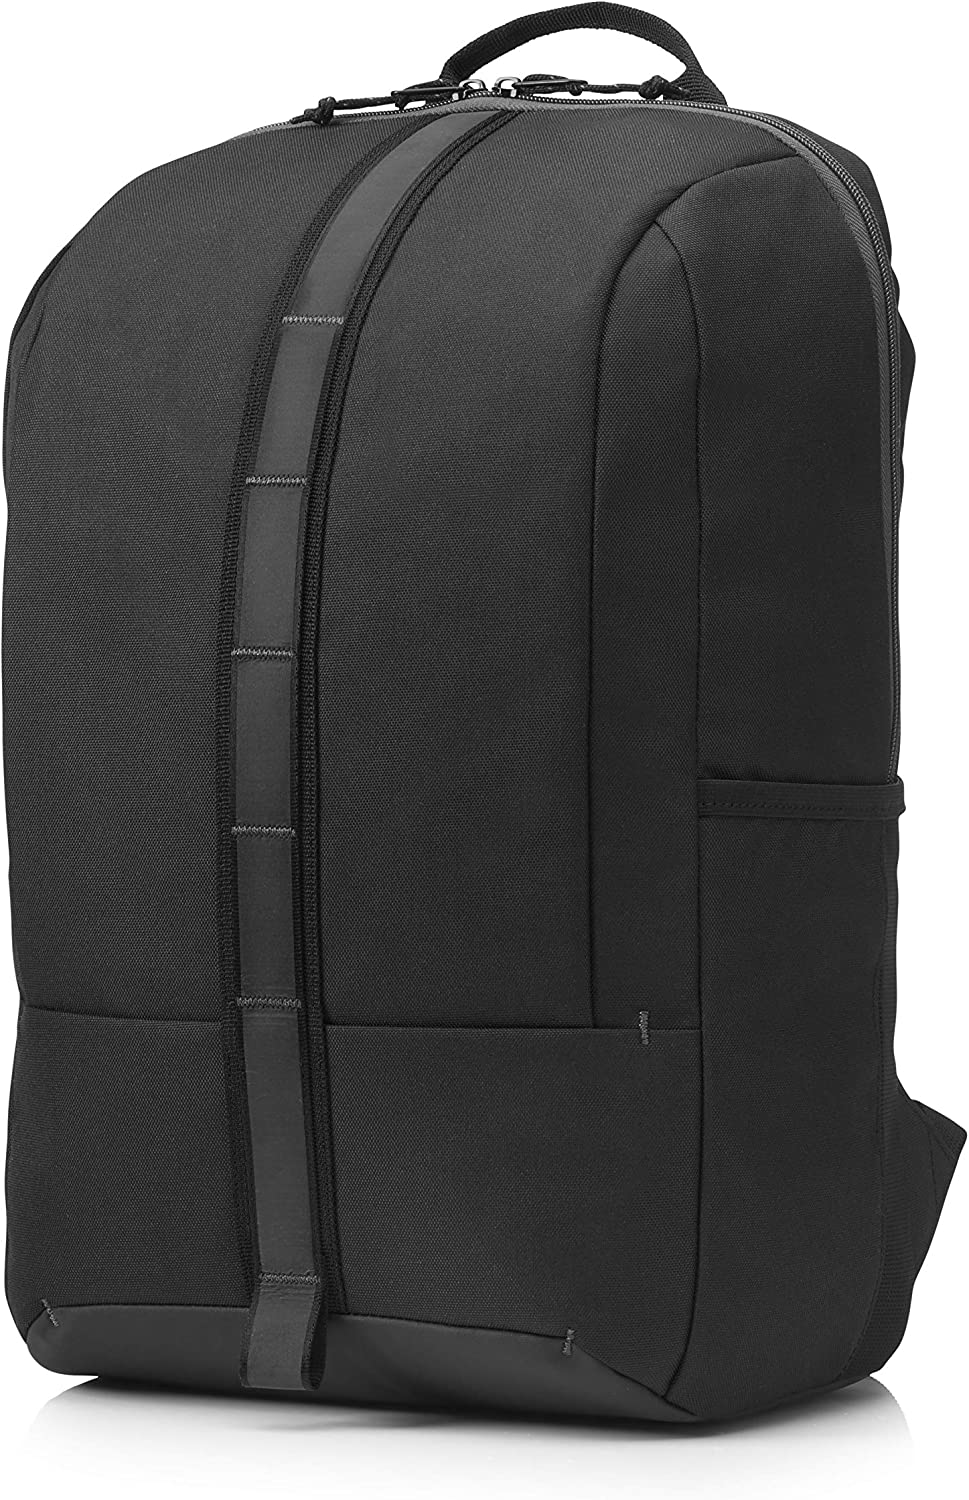 "HP Commuter Laptop Backpack | with 15.6"" Laptop/Tablet Compartment 